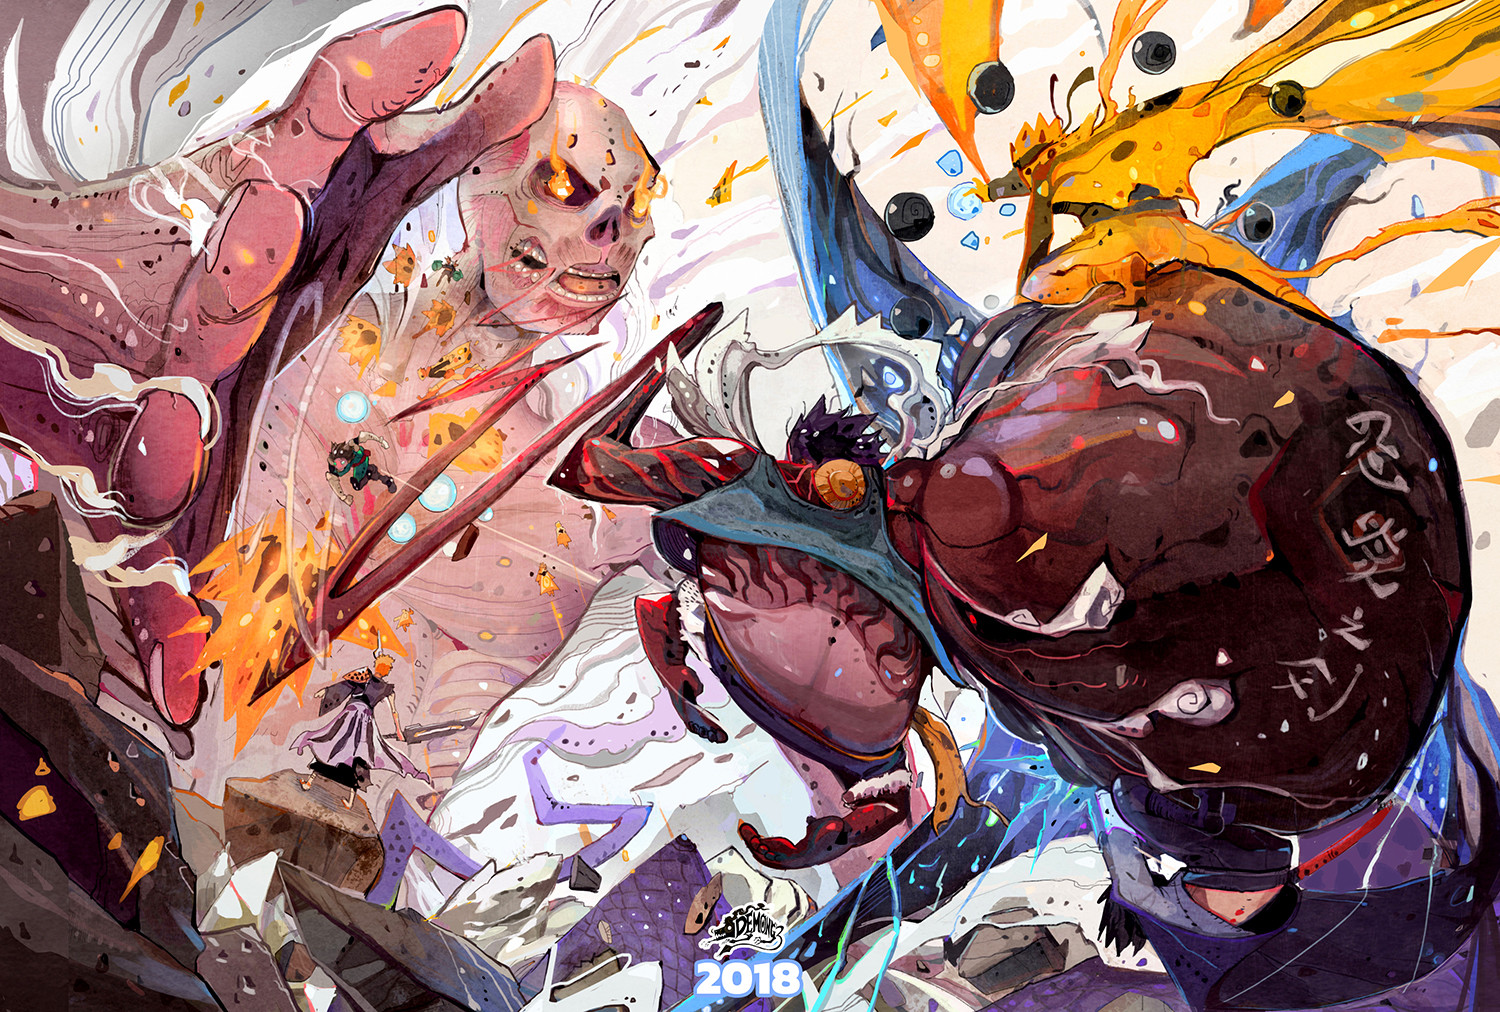 Which one has the better anime and. One Piece X Attack On Titan X Naruto 2018 Fanart By Narupiti Harunsong Onepiece